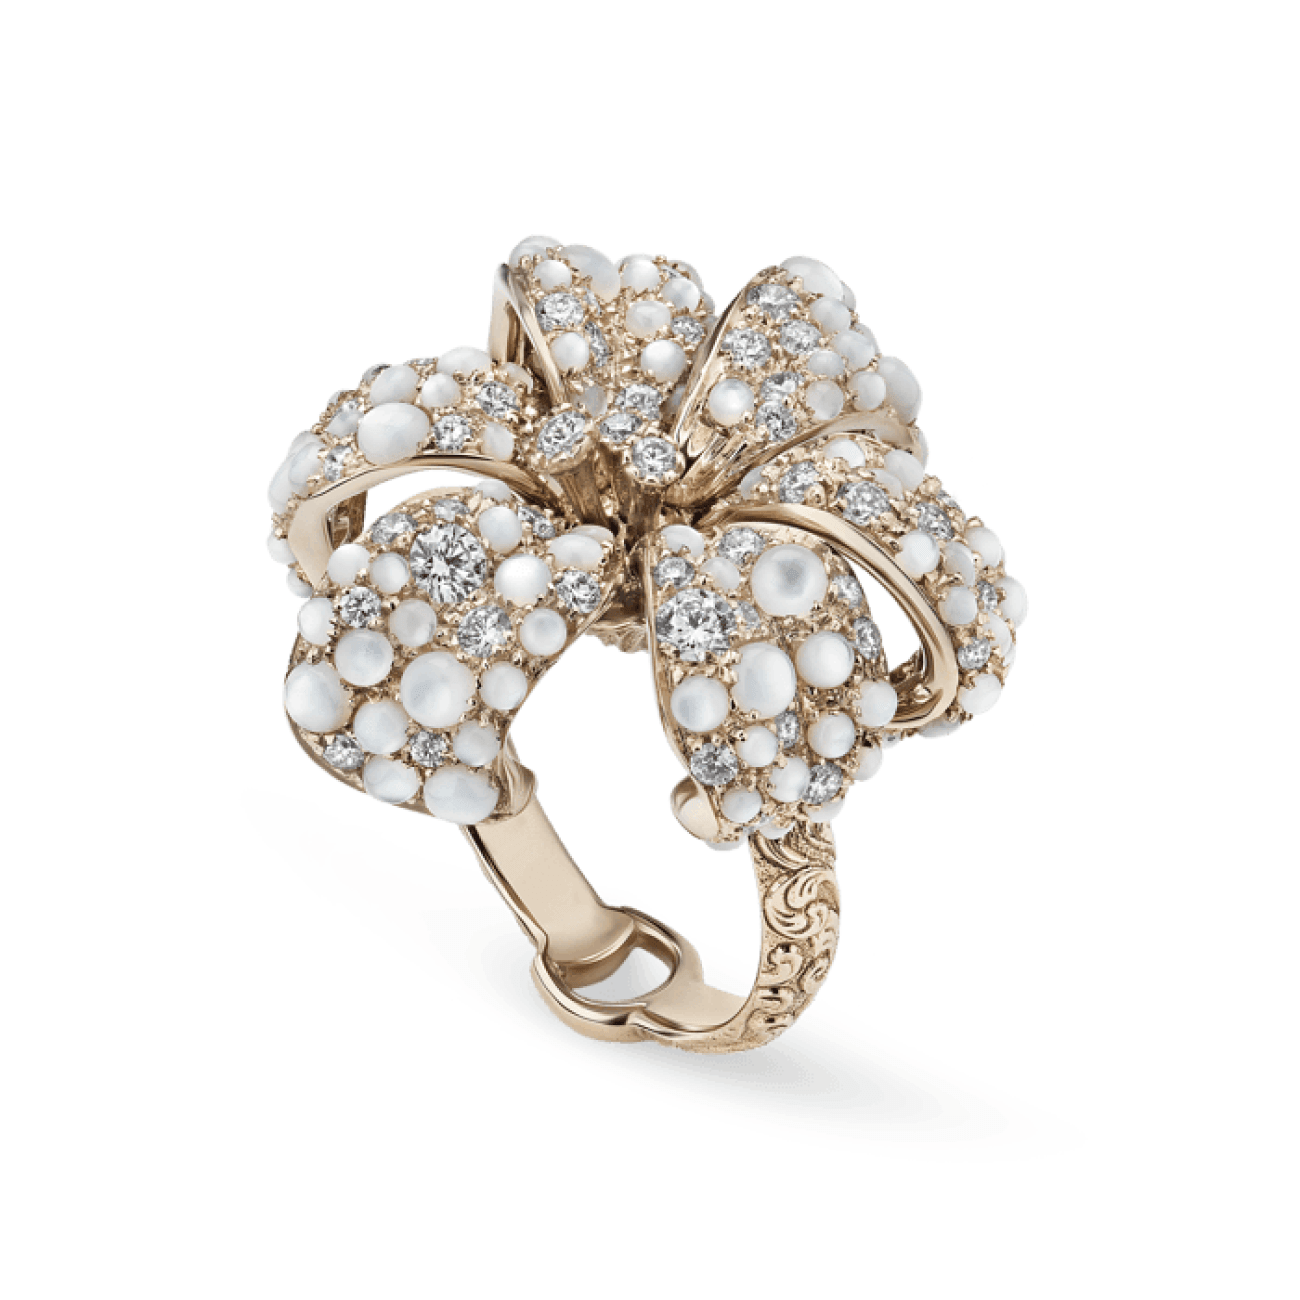 Gucci Jewelry - Flora Ring With Diamond Mop Ybc4794510013 | Manfredi Jewels